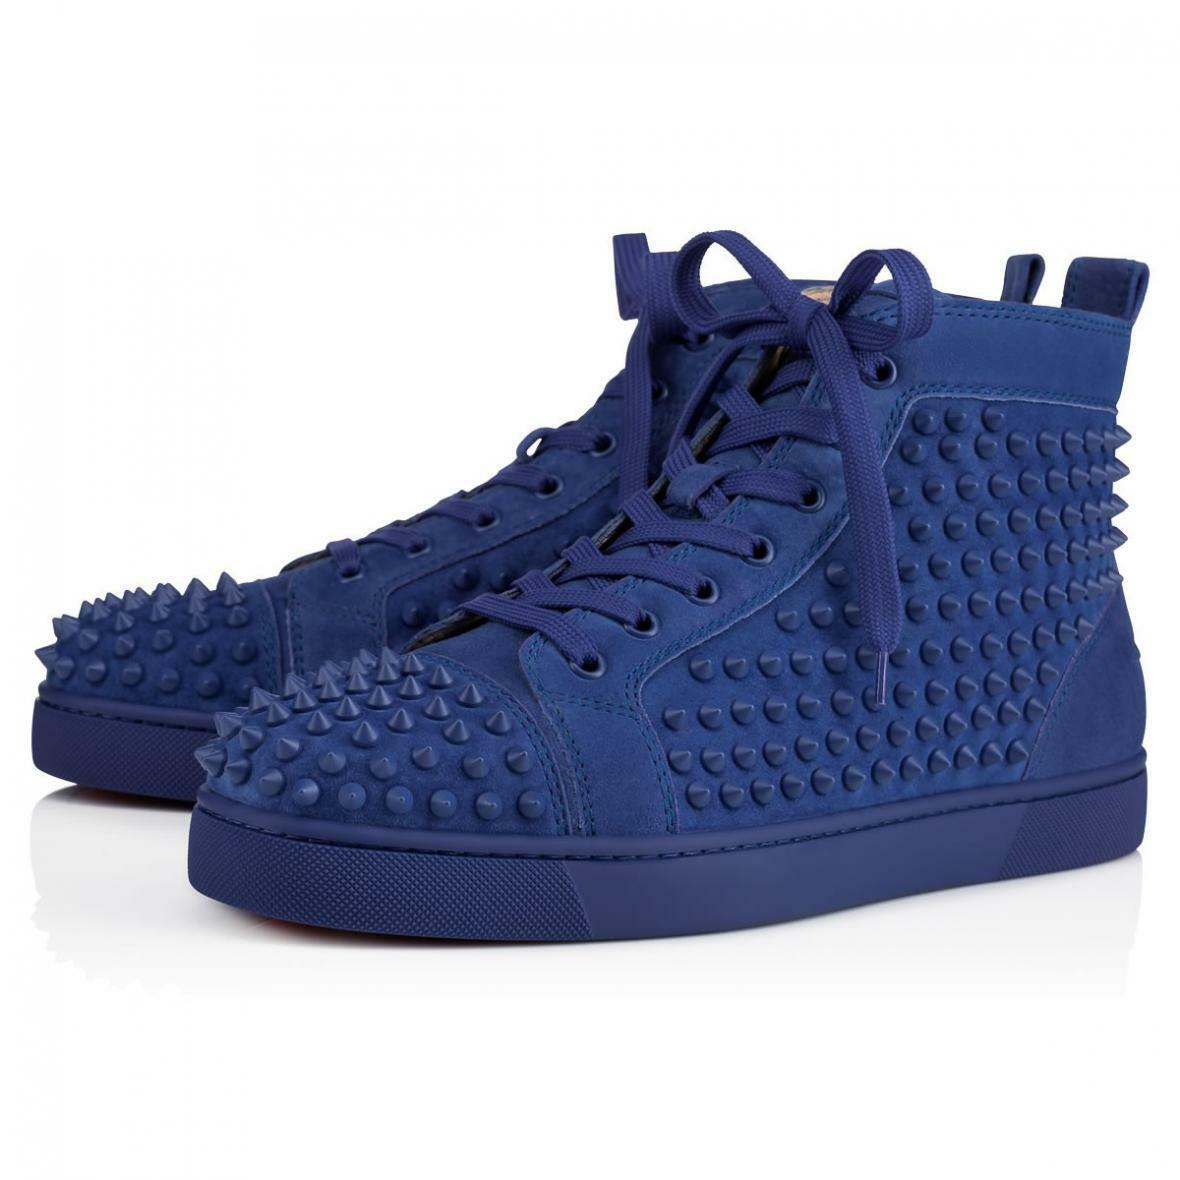 NIB Christian Louboutin Louis Flat Mens Azzurro bluee Spike High Top Sneaker 42